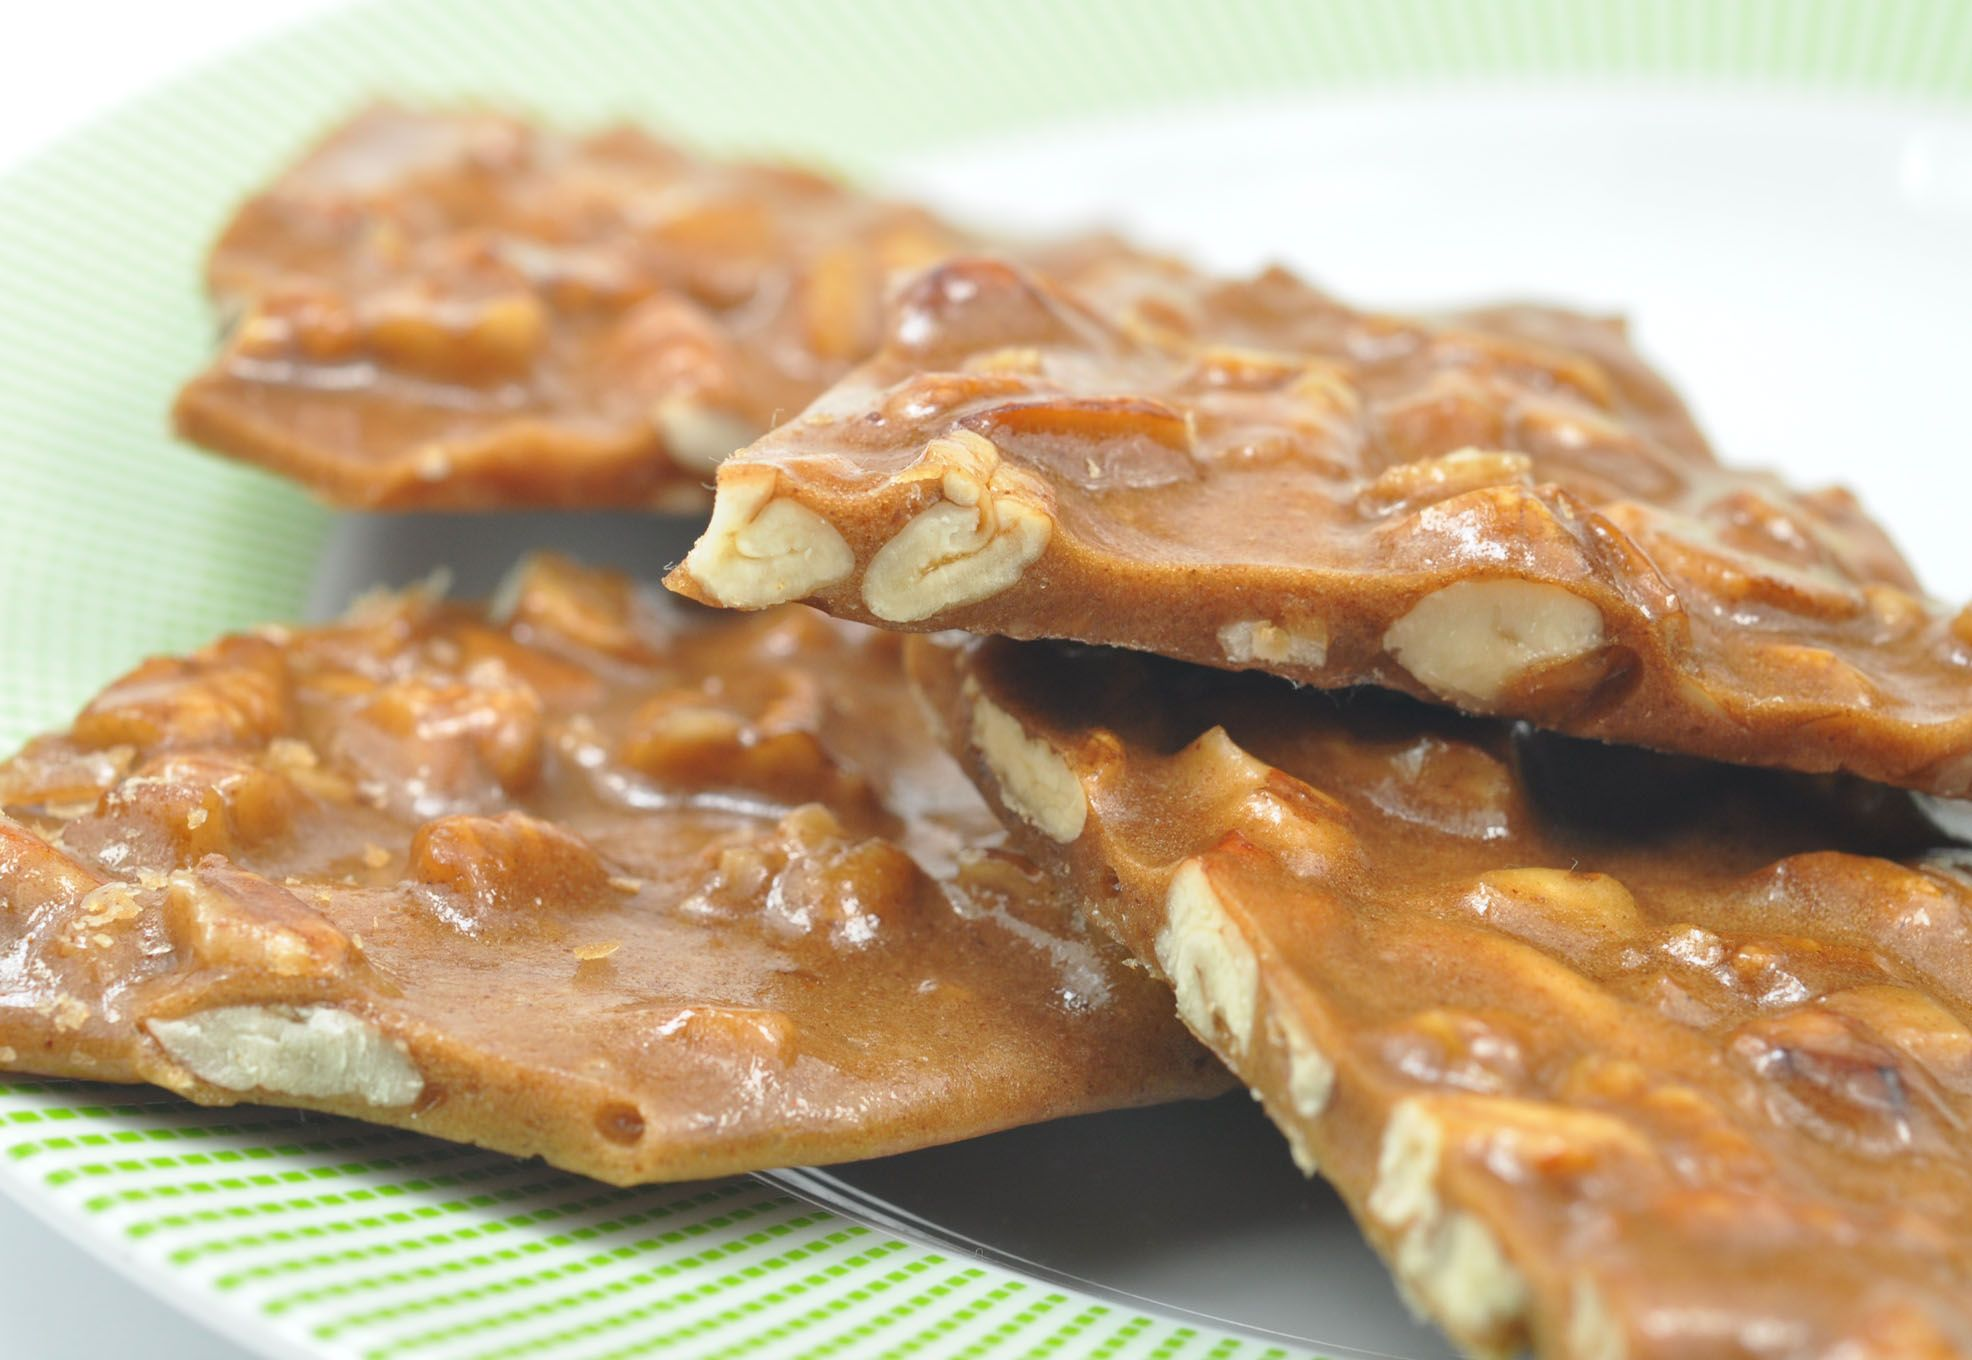 Light, crisp, crunchy and sweet - this pecan brittle candy recipe is a Texas favorite. Have last minute guests dropping by? Whip up a batch of this popular candy in 30 minutes or less.